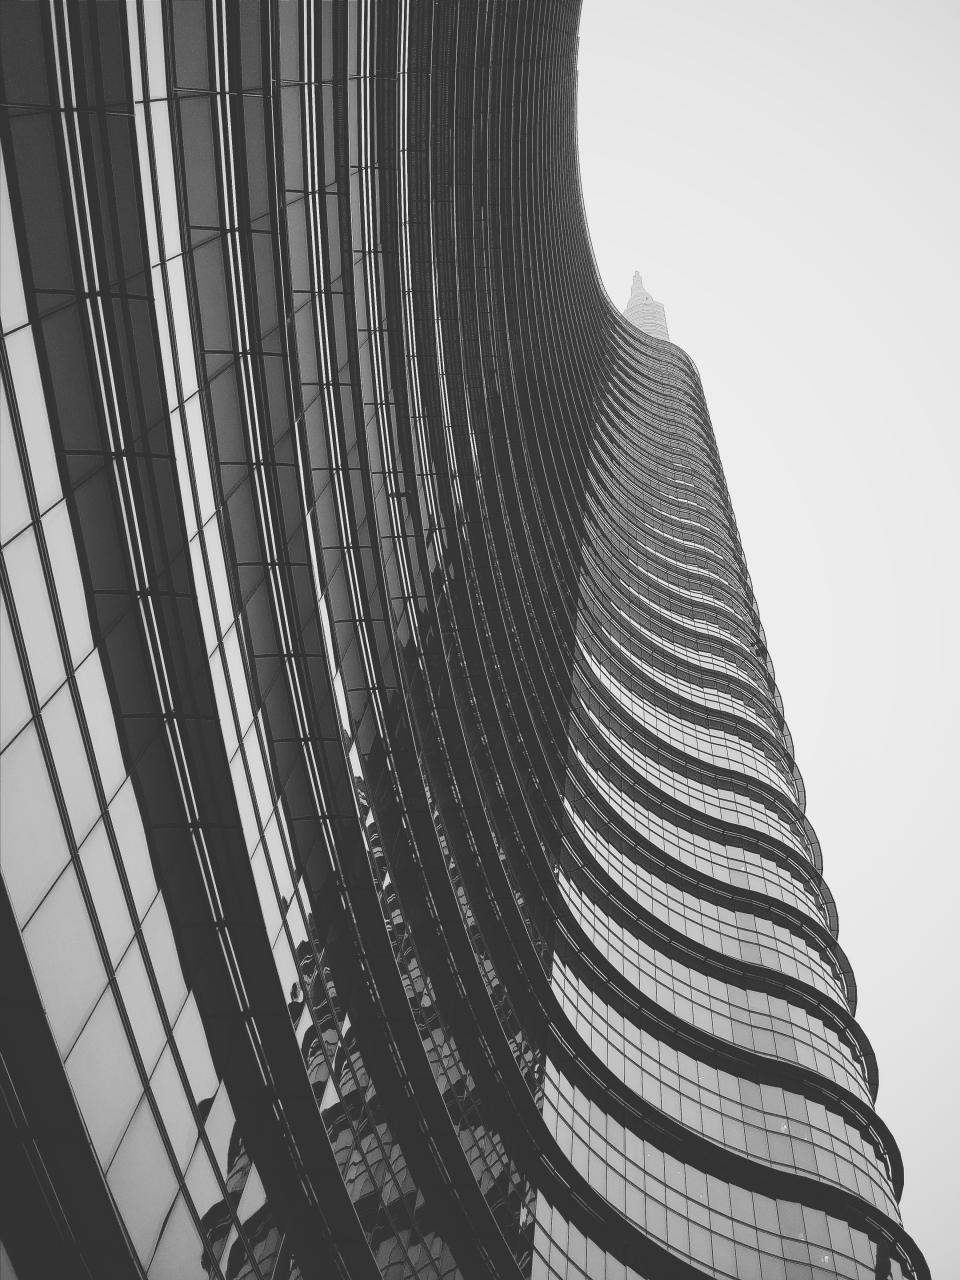 building architecture tower high rise windows city urban black and white